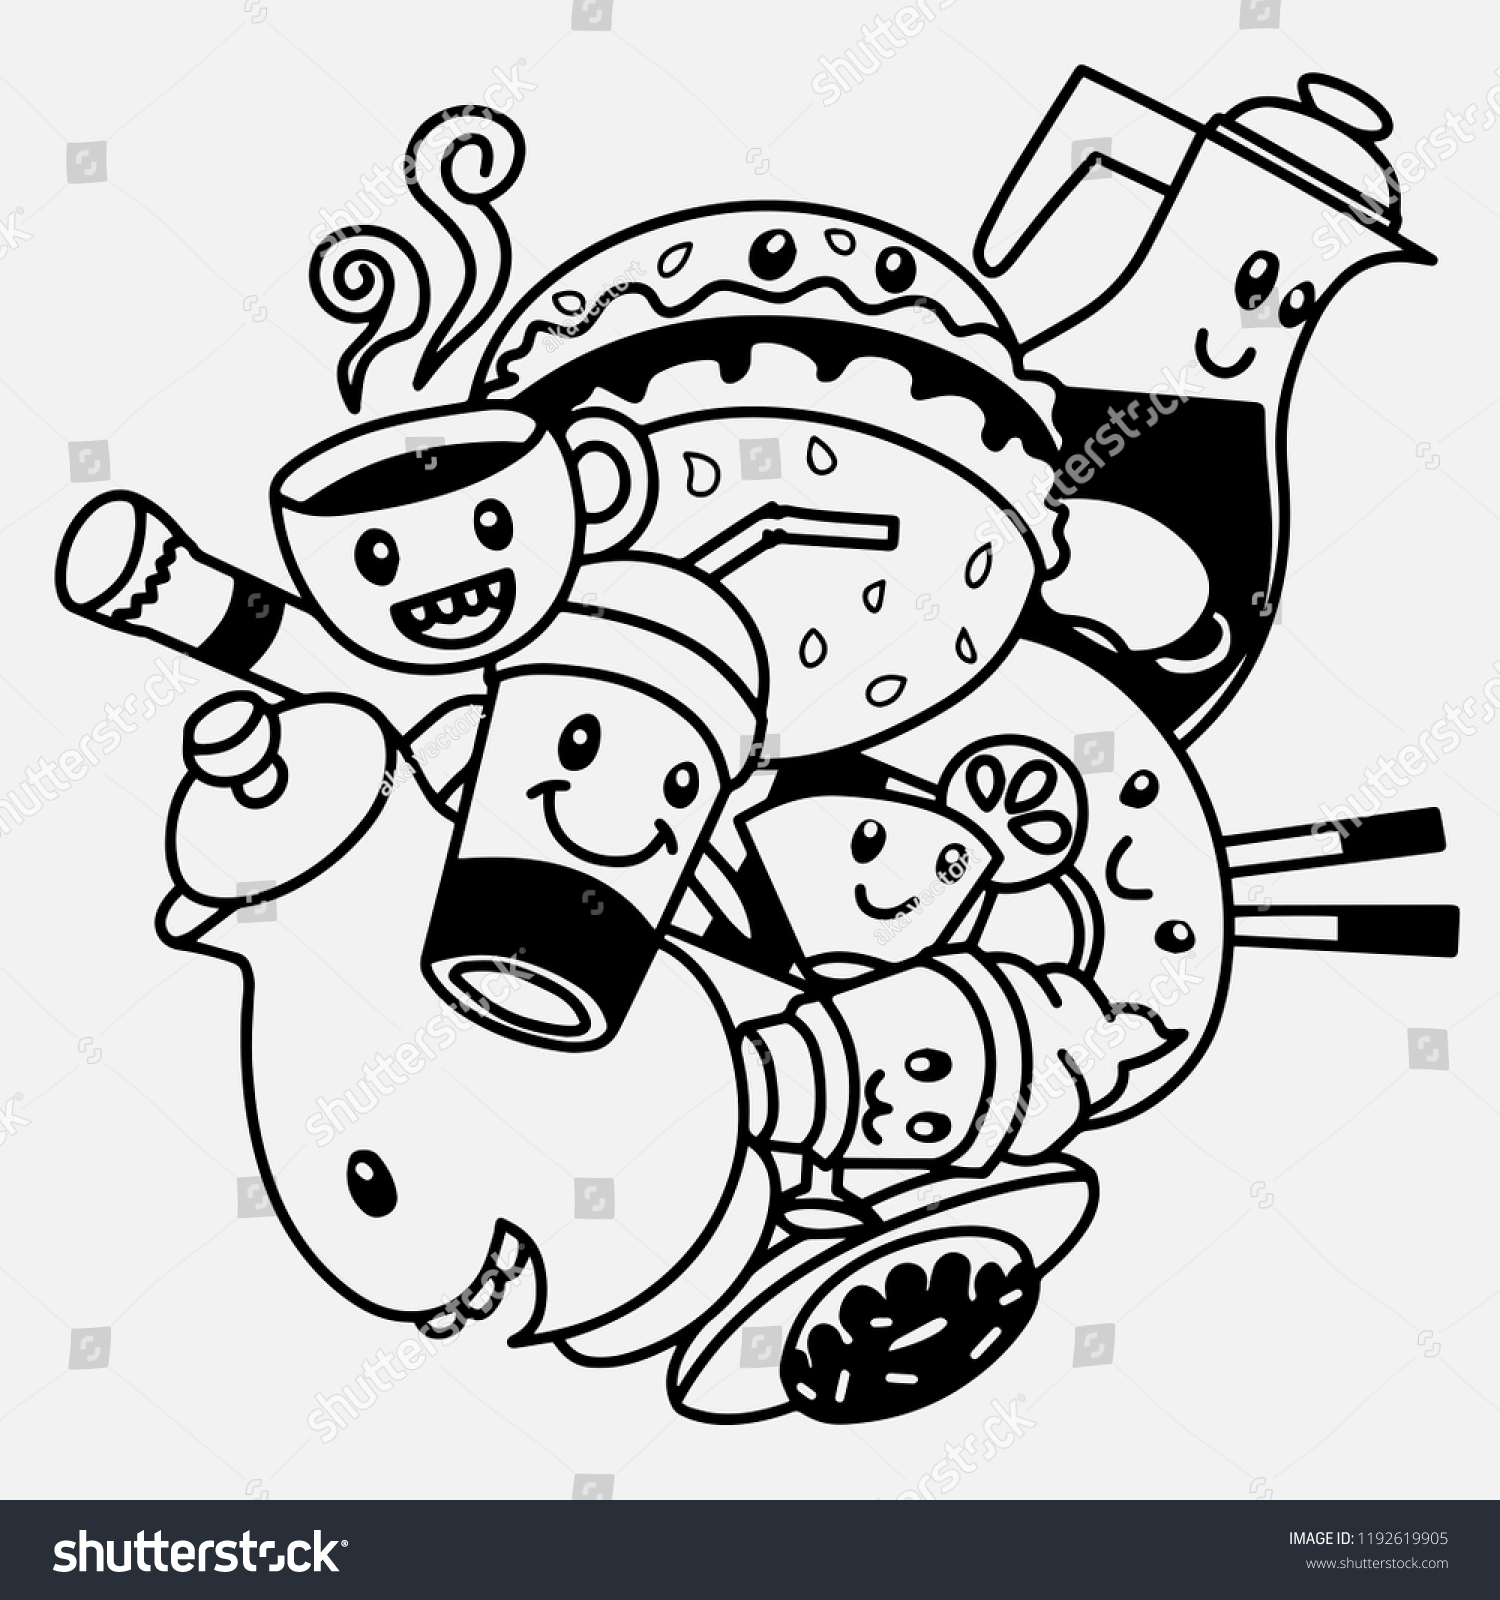 Vector Illustration Doodle Cute Monster Background Stock Vector ...